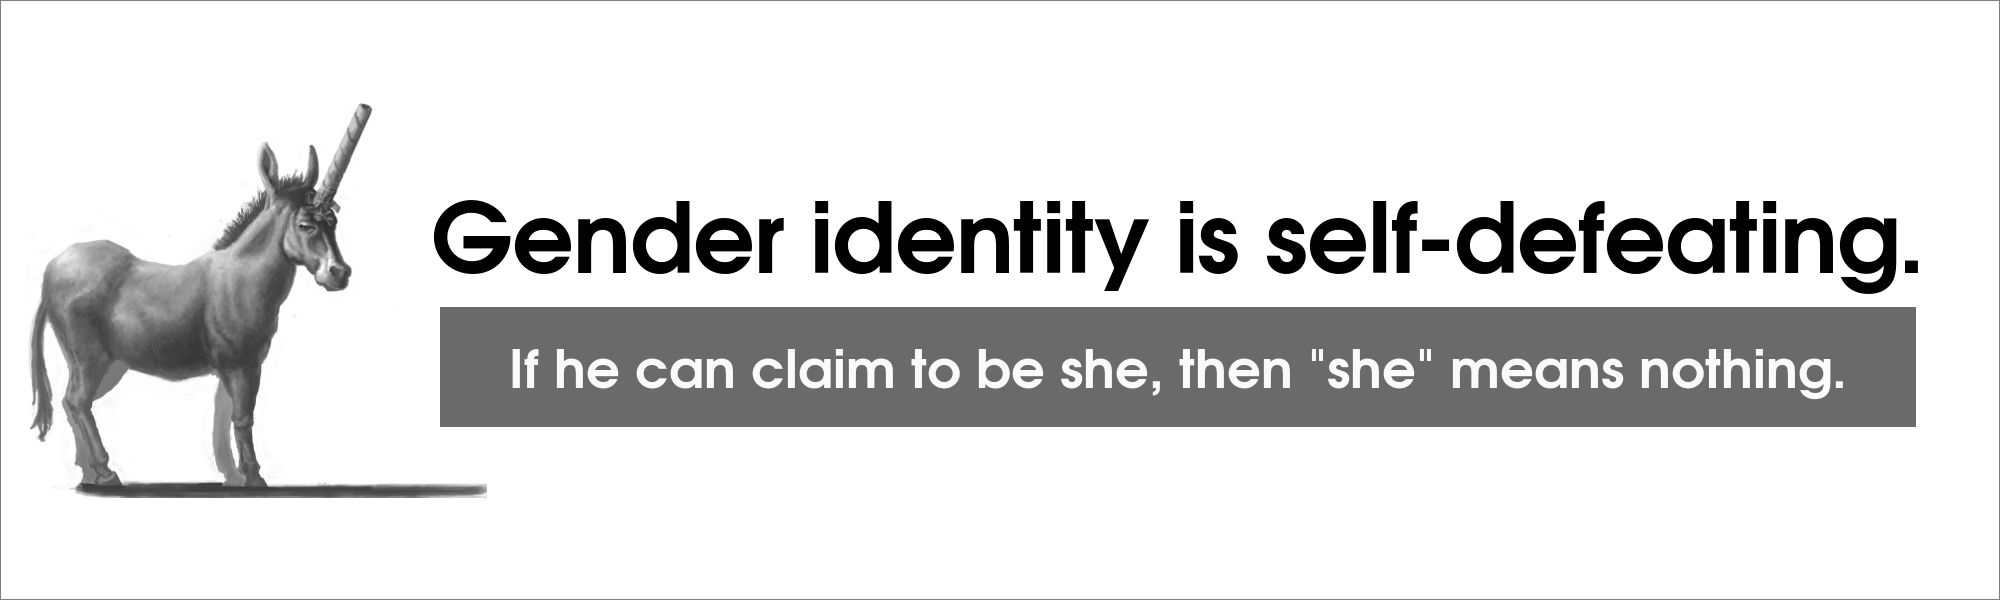 essay identity gender Essays and criticism on william shakespeare - gender identity.